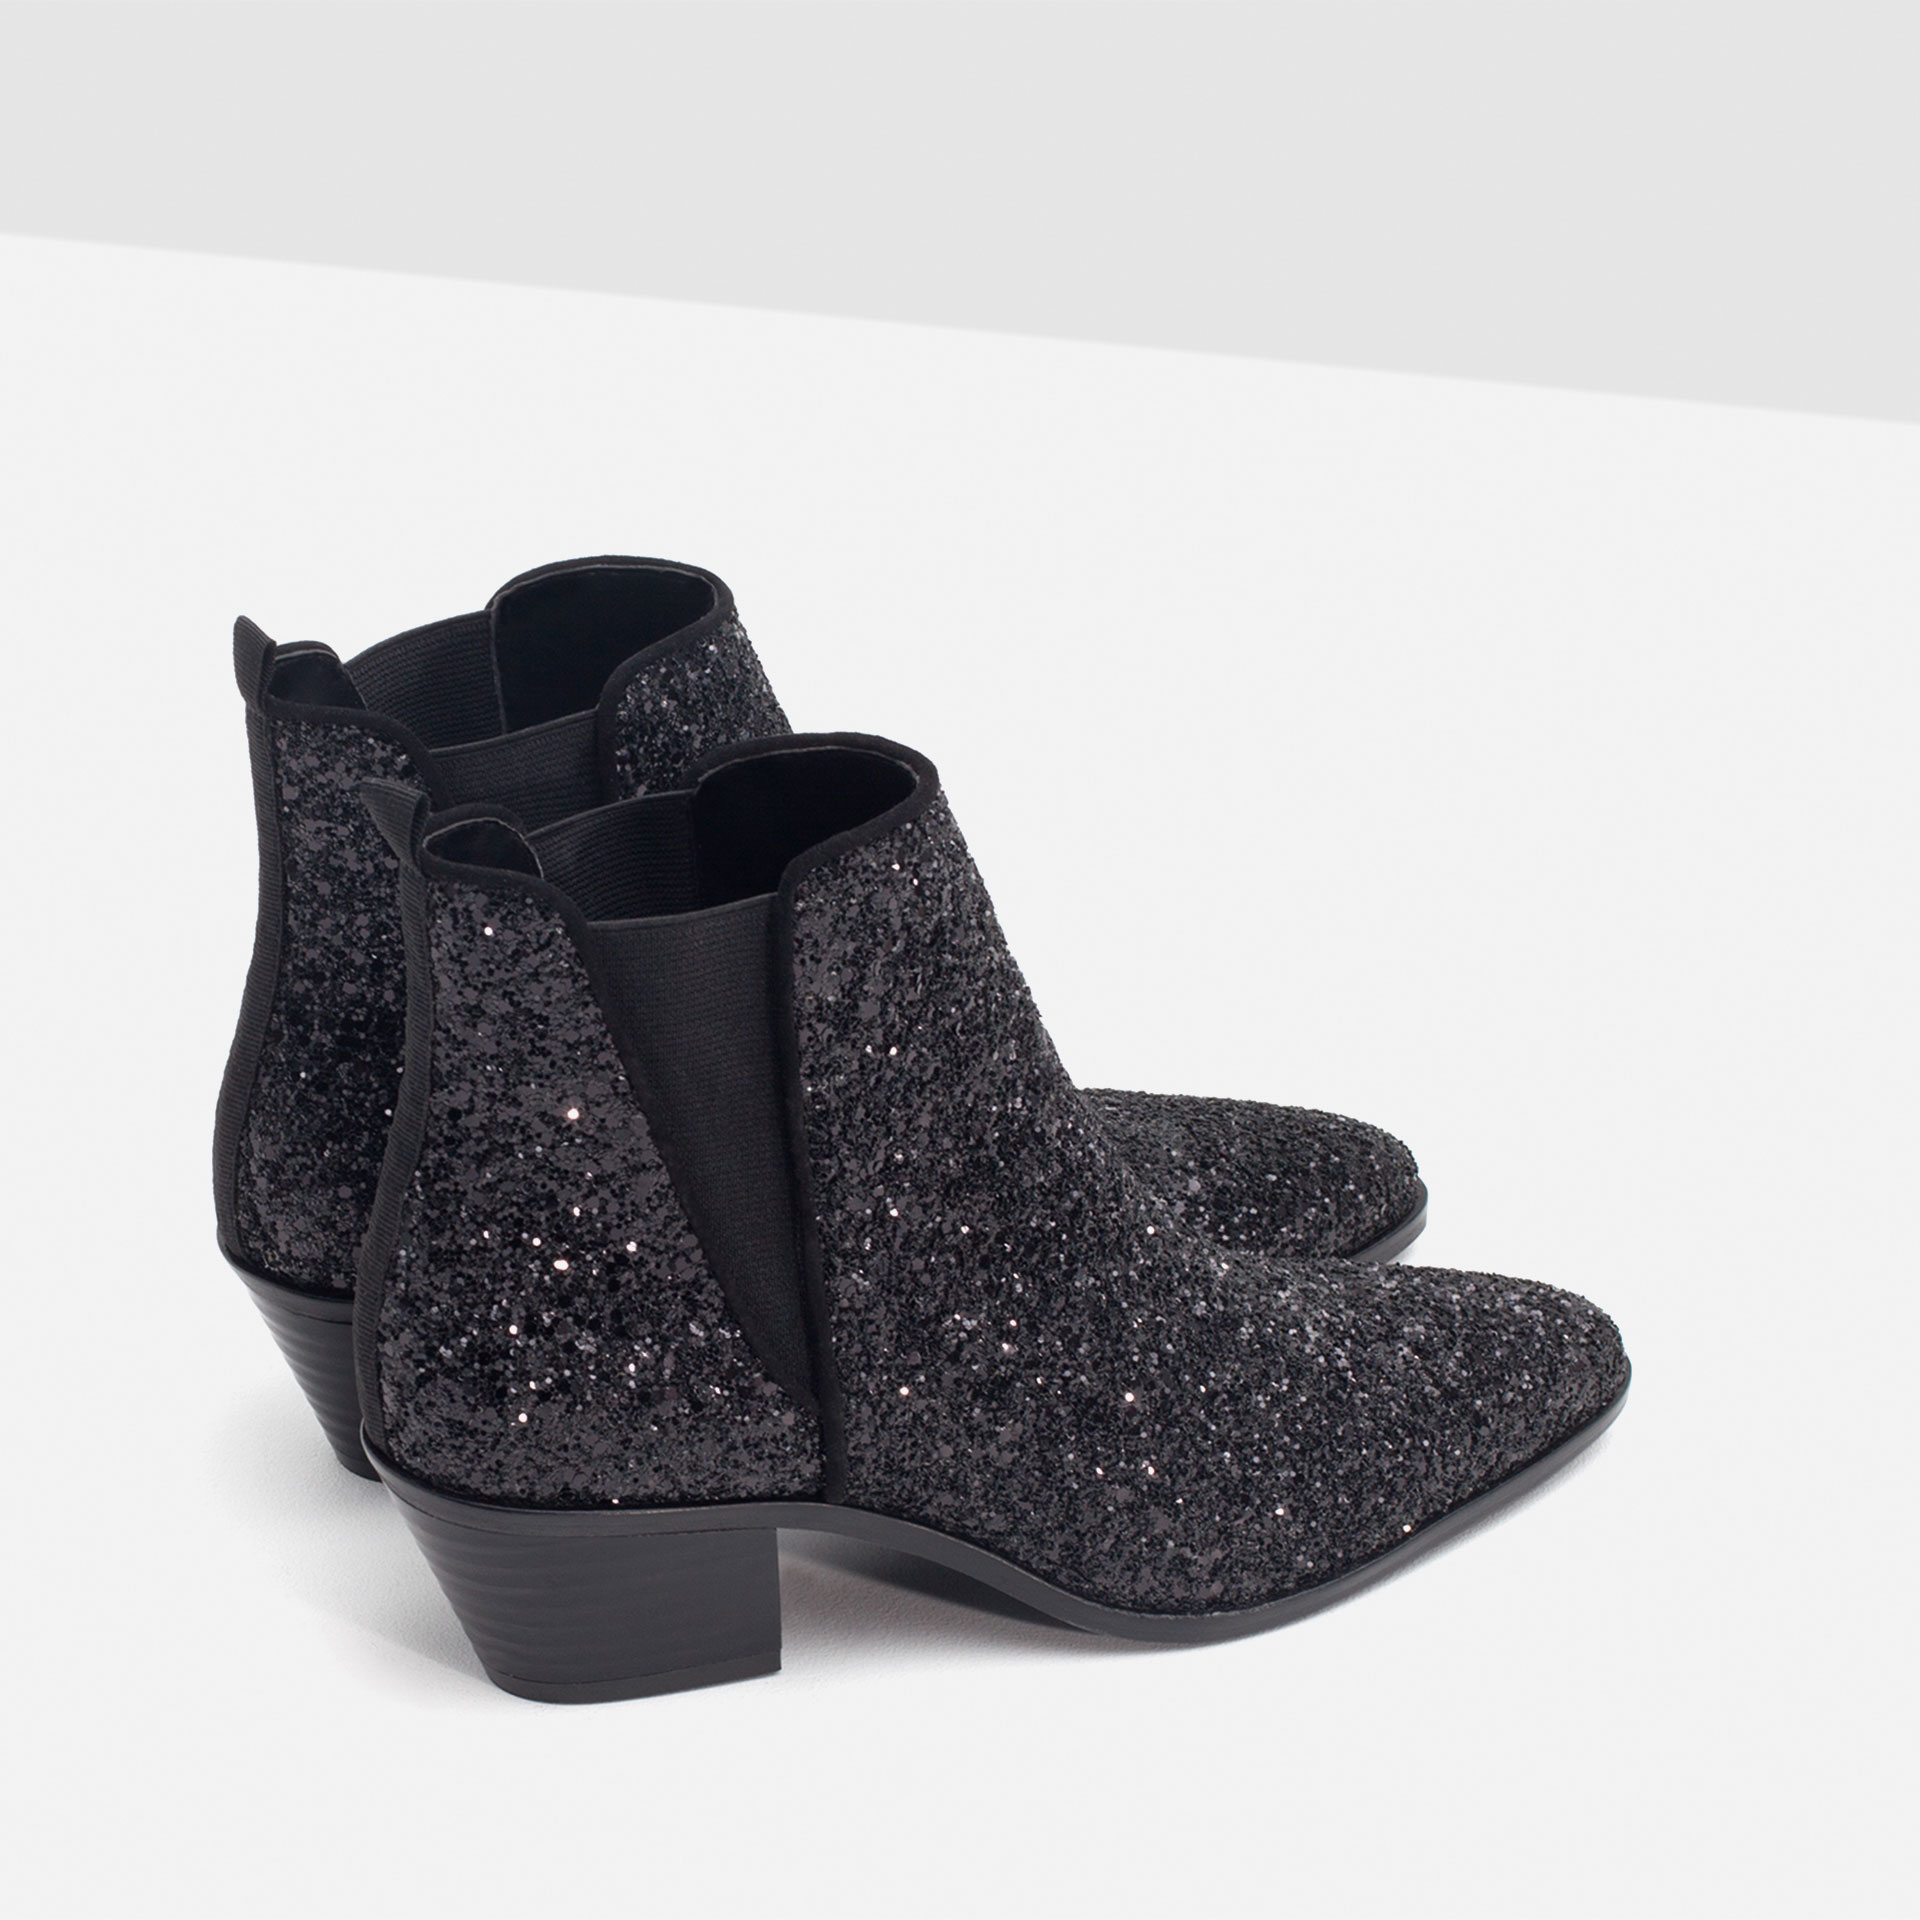 Zara Sparkle Ankle Boots in Black | Lyst